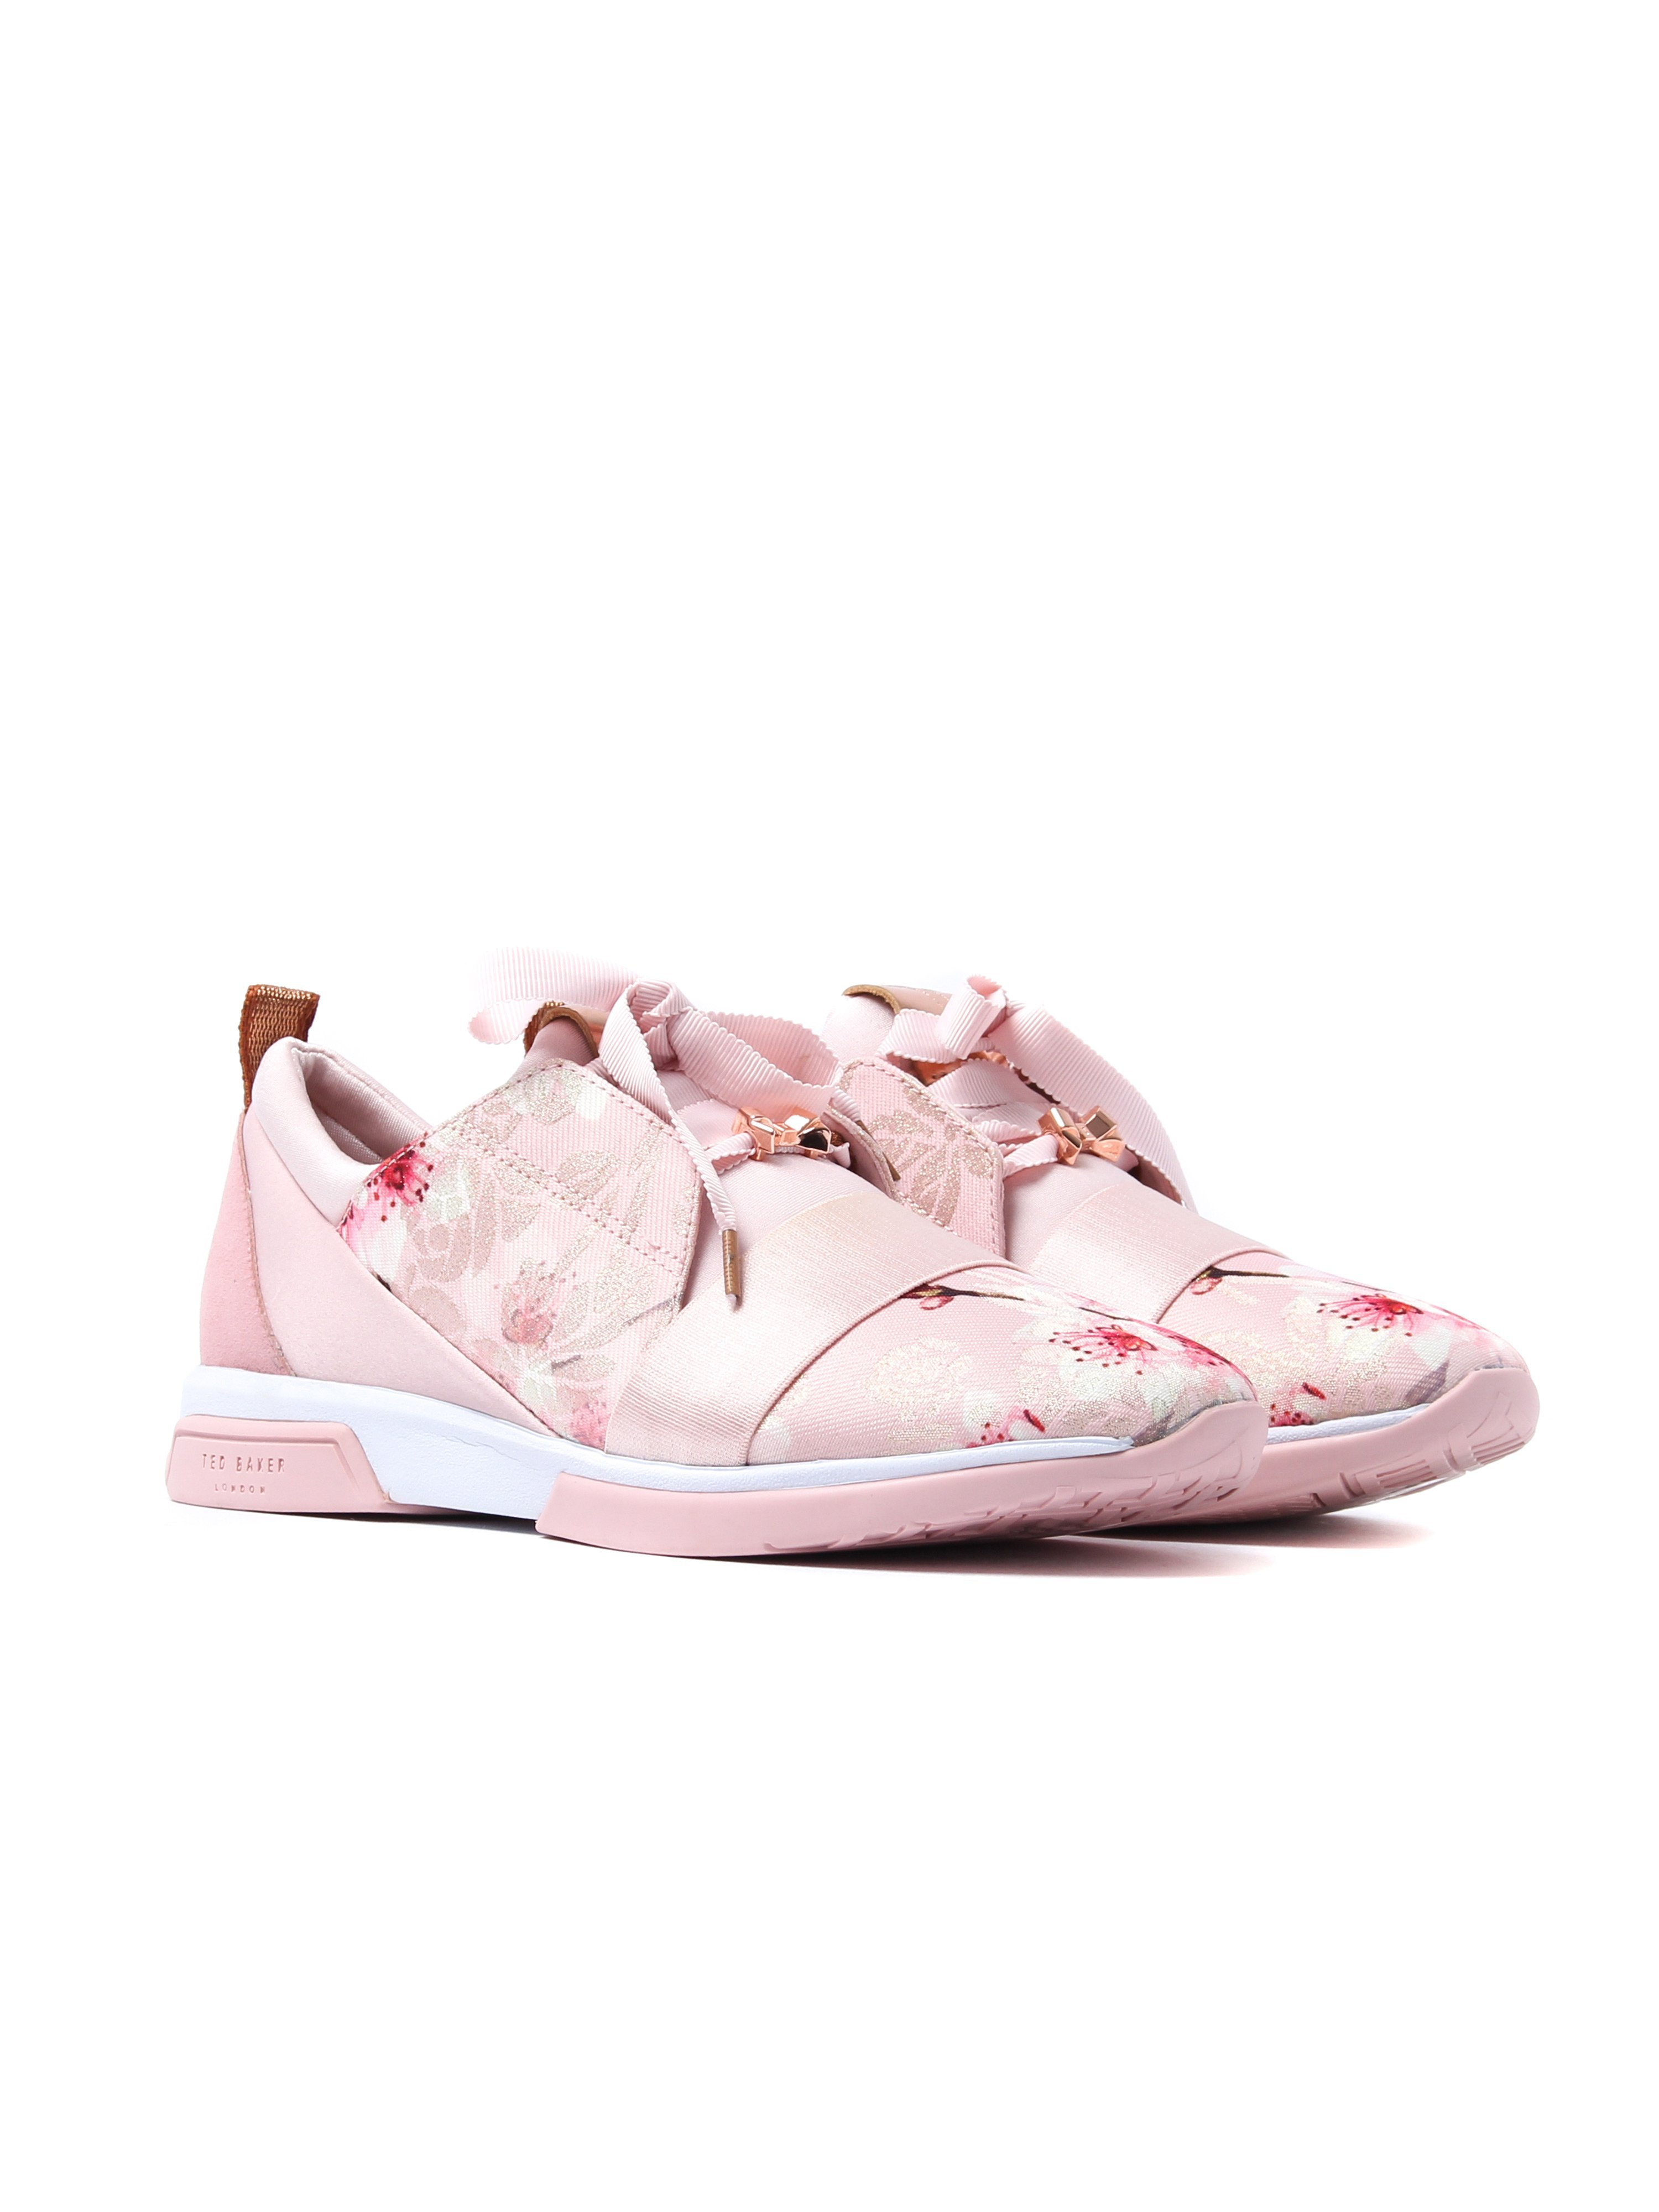 Ted Baker Women's Cepap Trainers - Blossom Pink